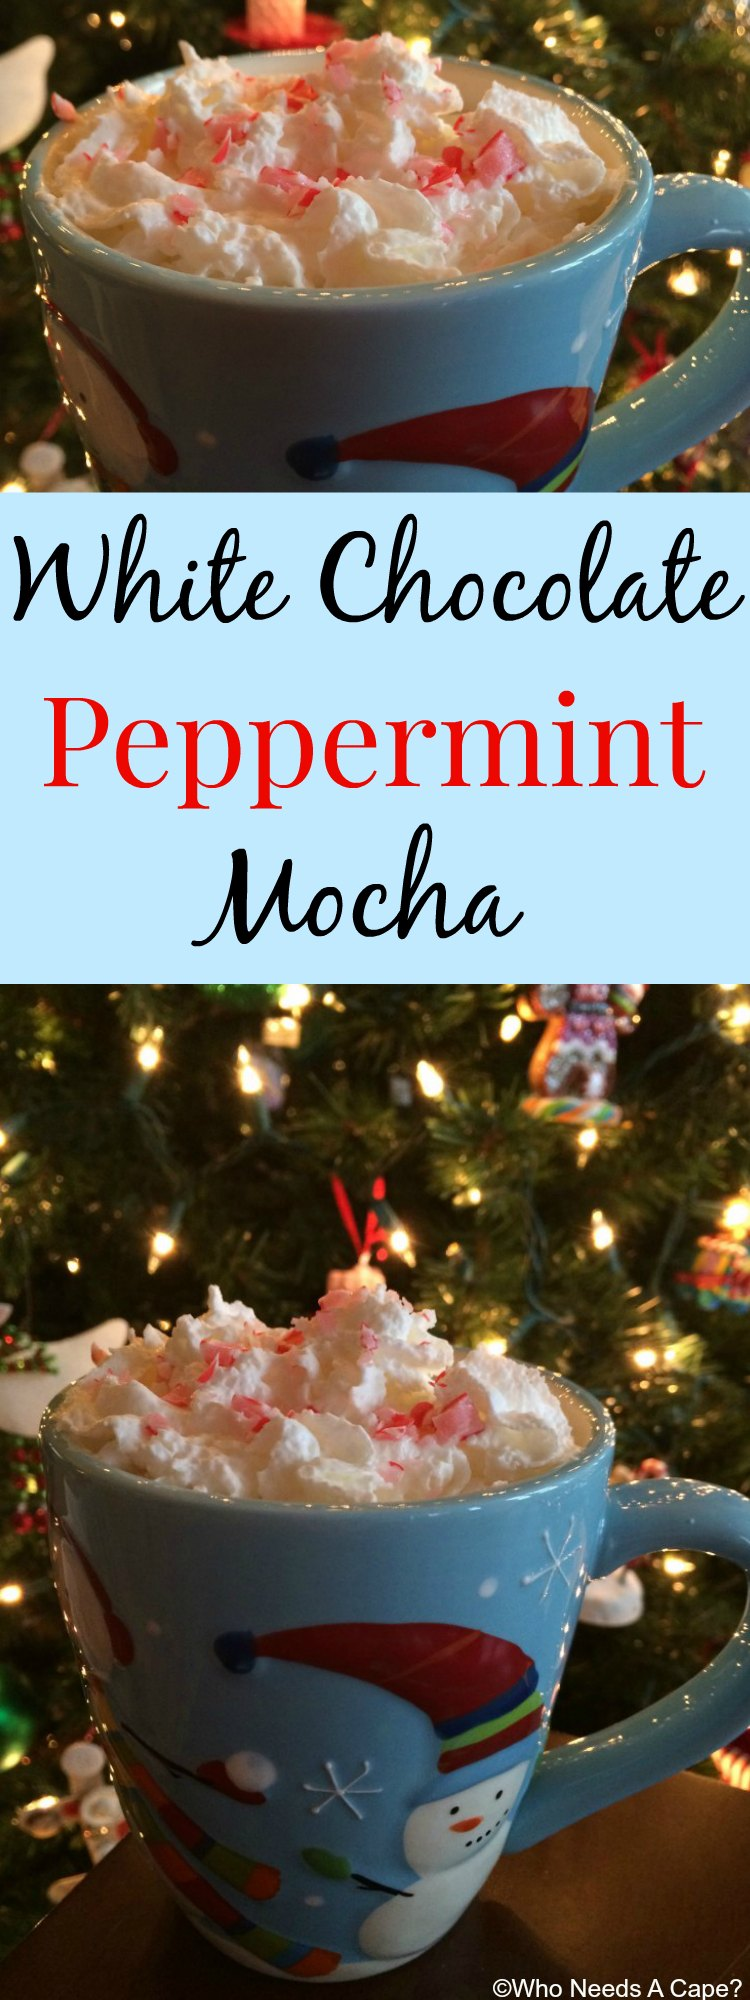 White Chocolate Peppermint Mocha | Who Needs A Cape?